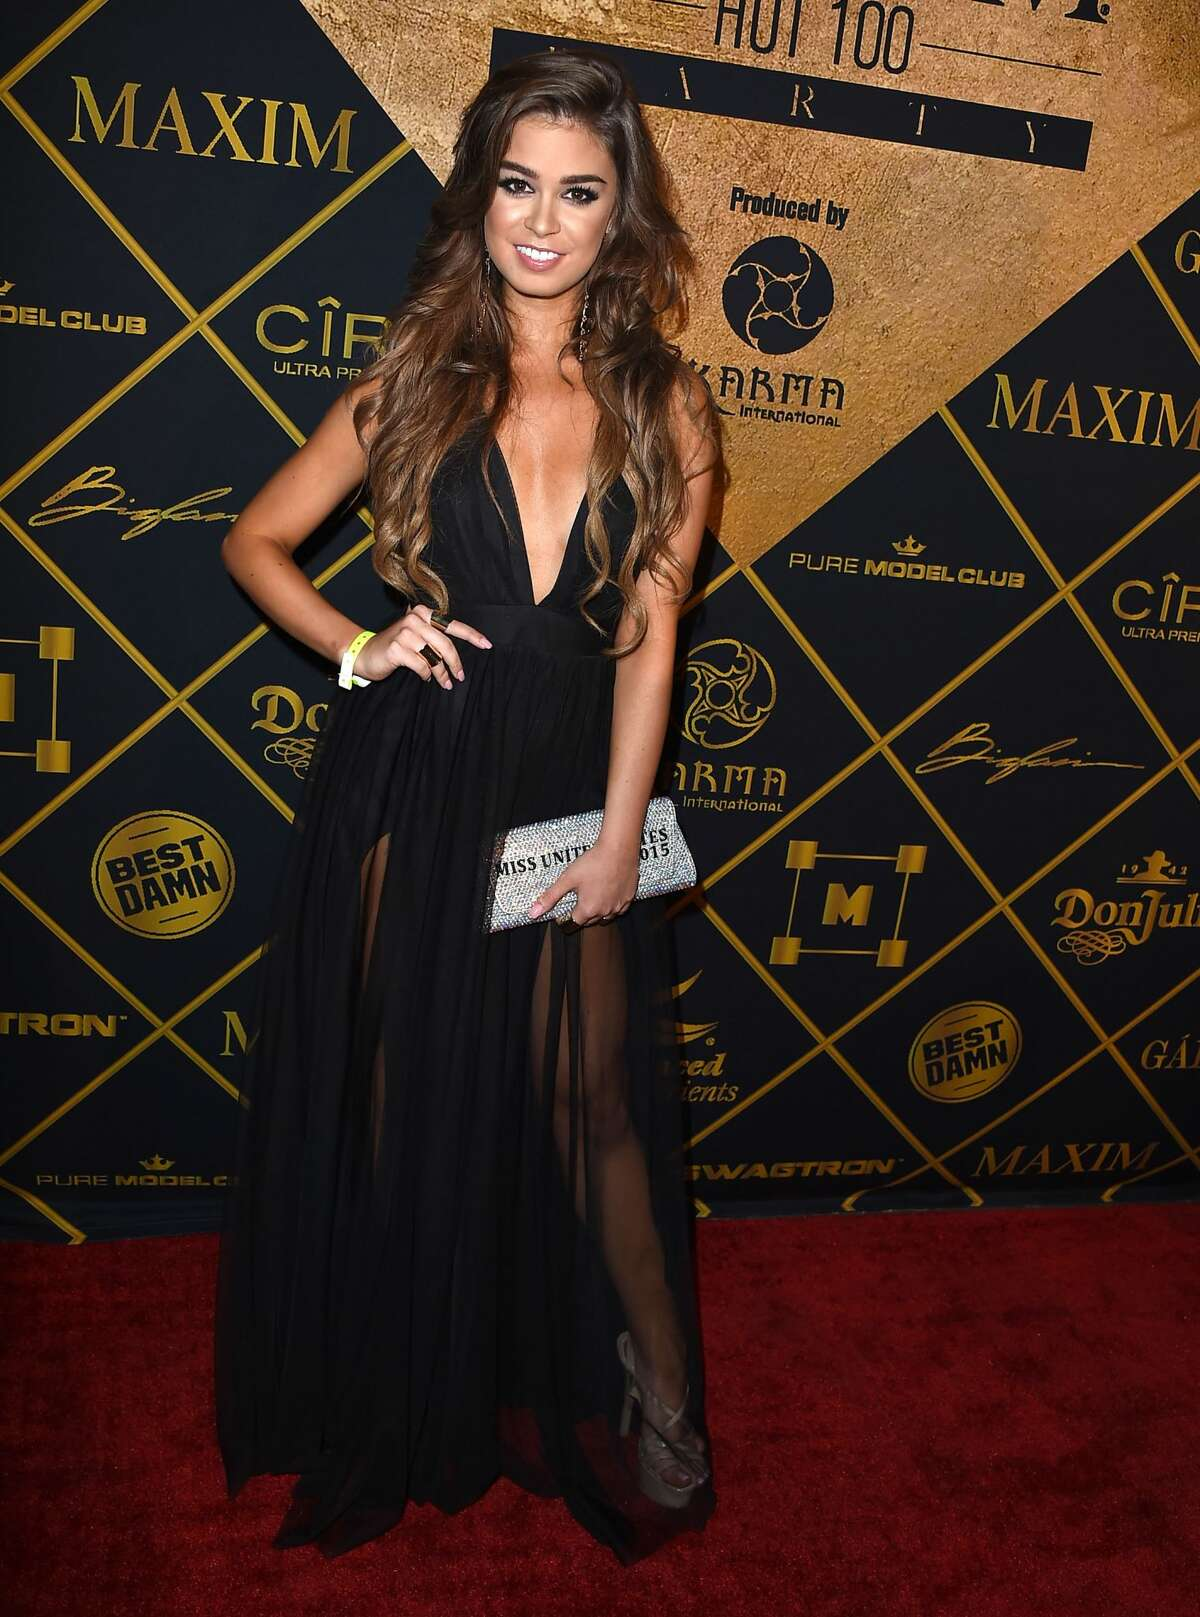 Kara Del Toro arrives at the Maxim Hot 100 Party on July 30, 2016 in Los Angeles, California. (Photo by Steve Granitz/WireImage)